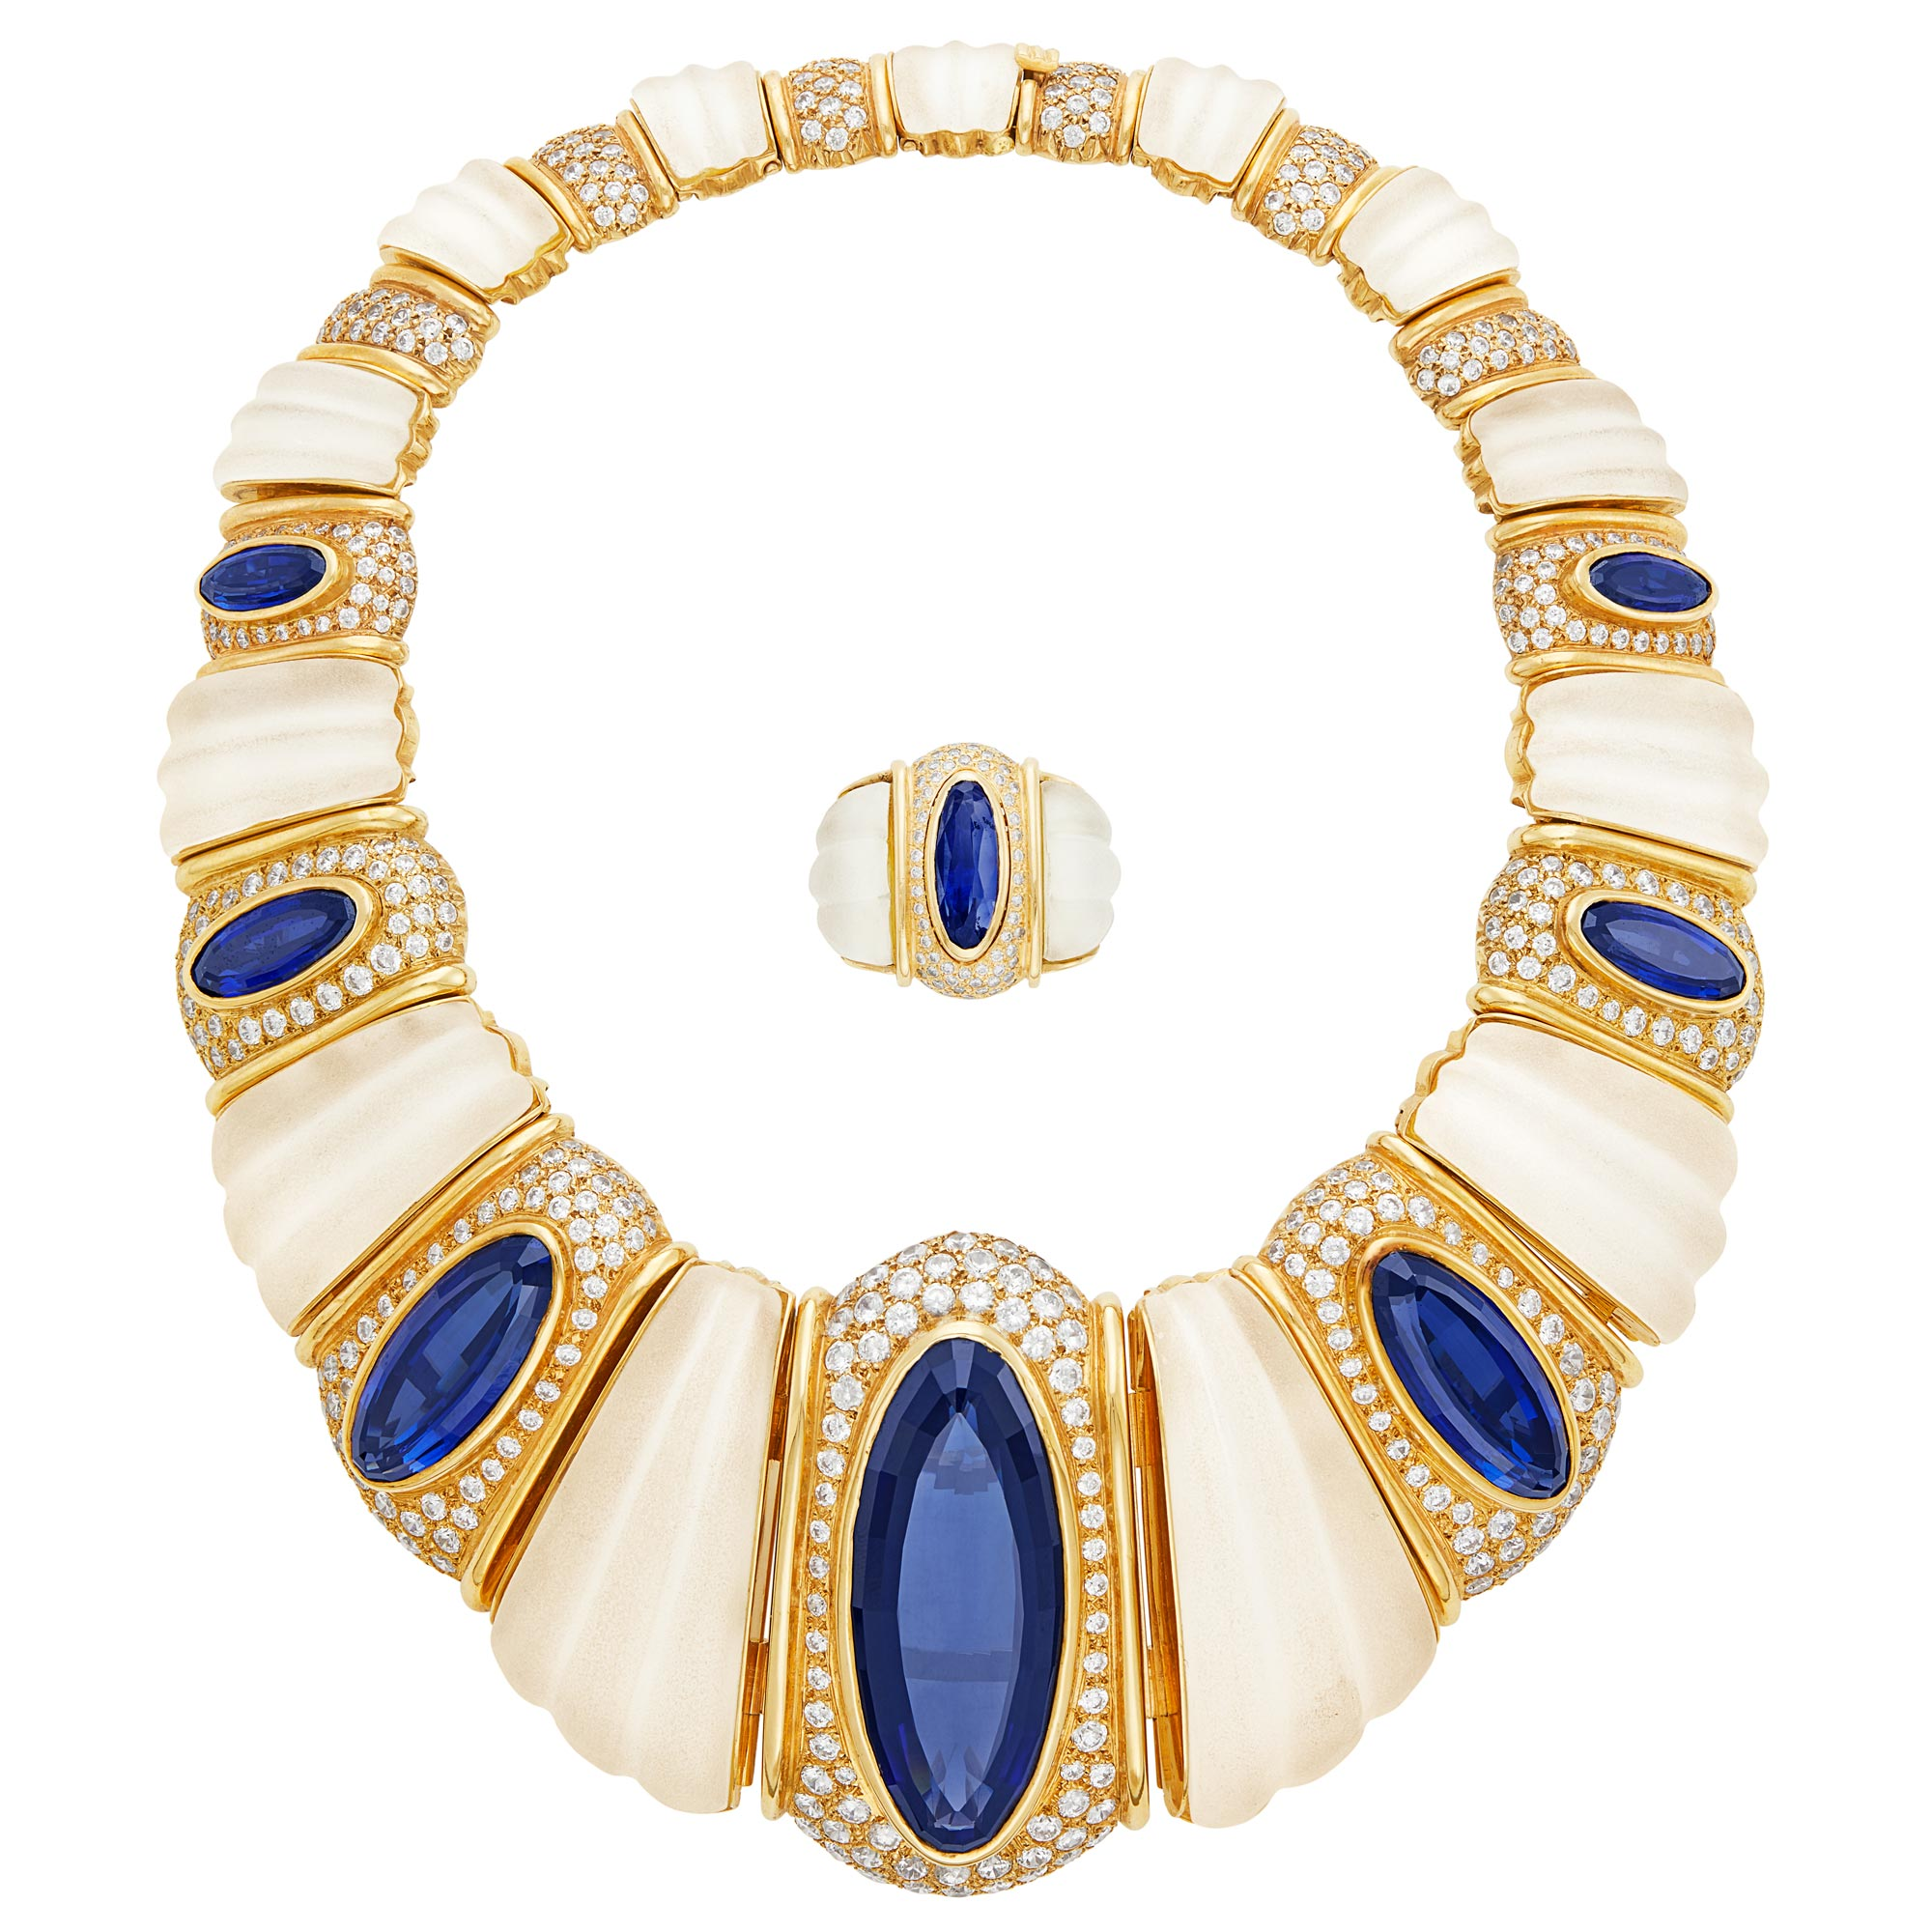 Lot image - Gold, Frosted Rock Crystal, Synthetic Sapphire and Cubic Zirconia Necklace and Ring